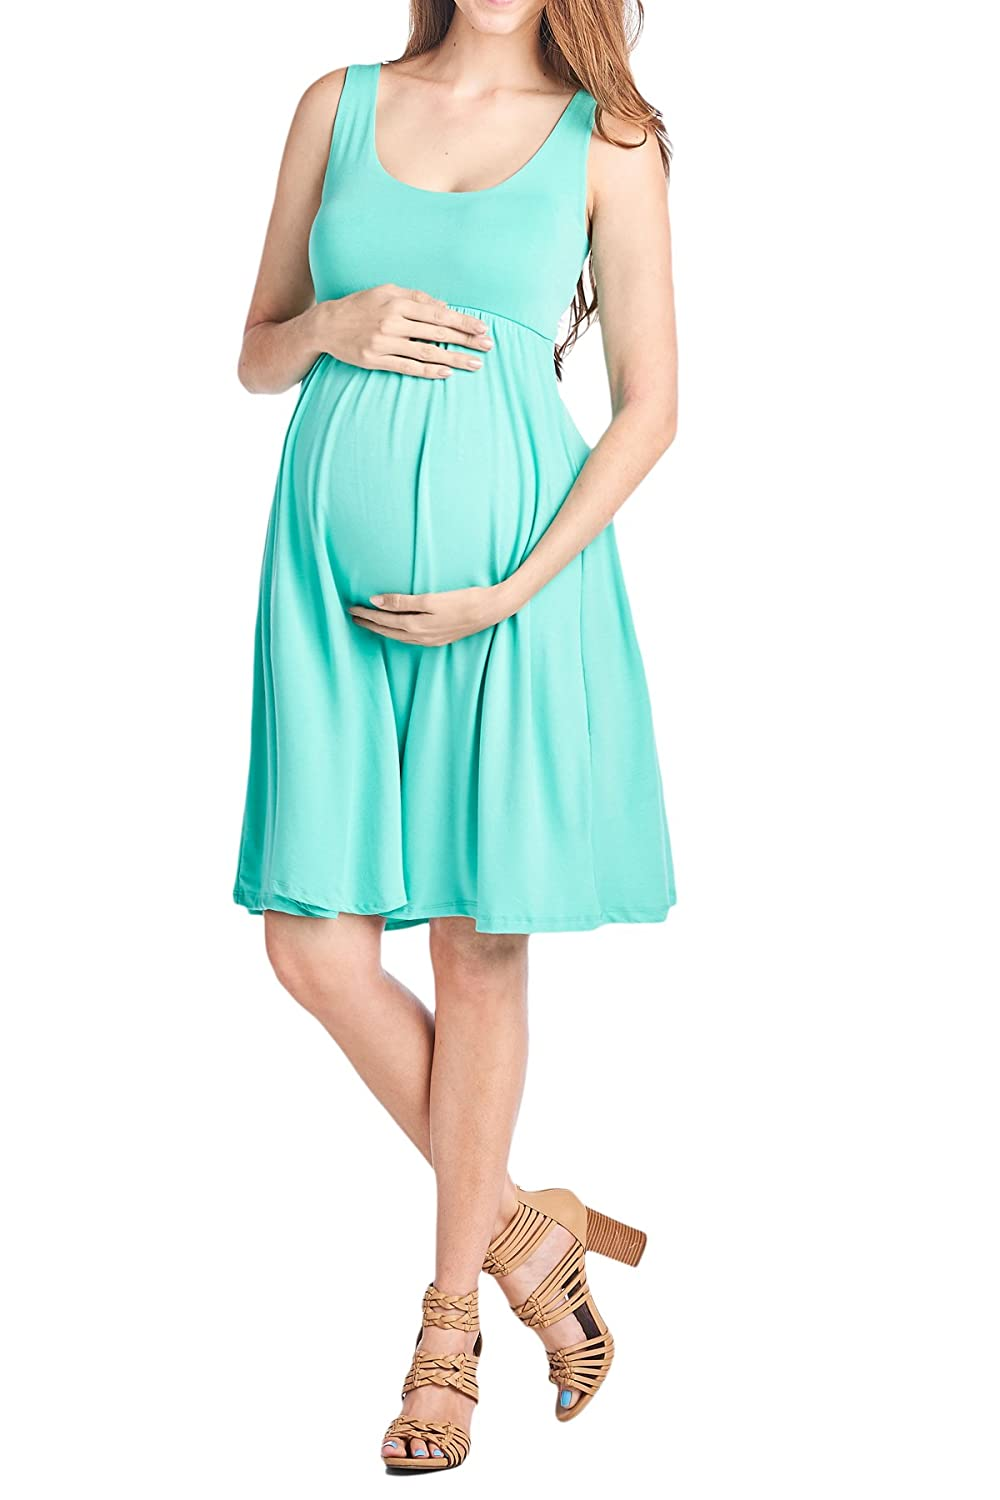 Dorable Cheap Maternity Dresses For Wedding Guest Composition - All ...